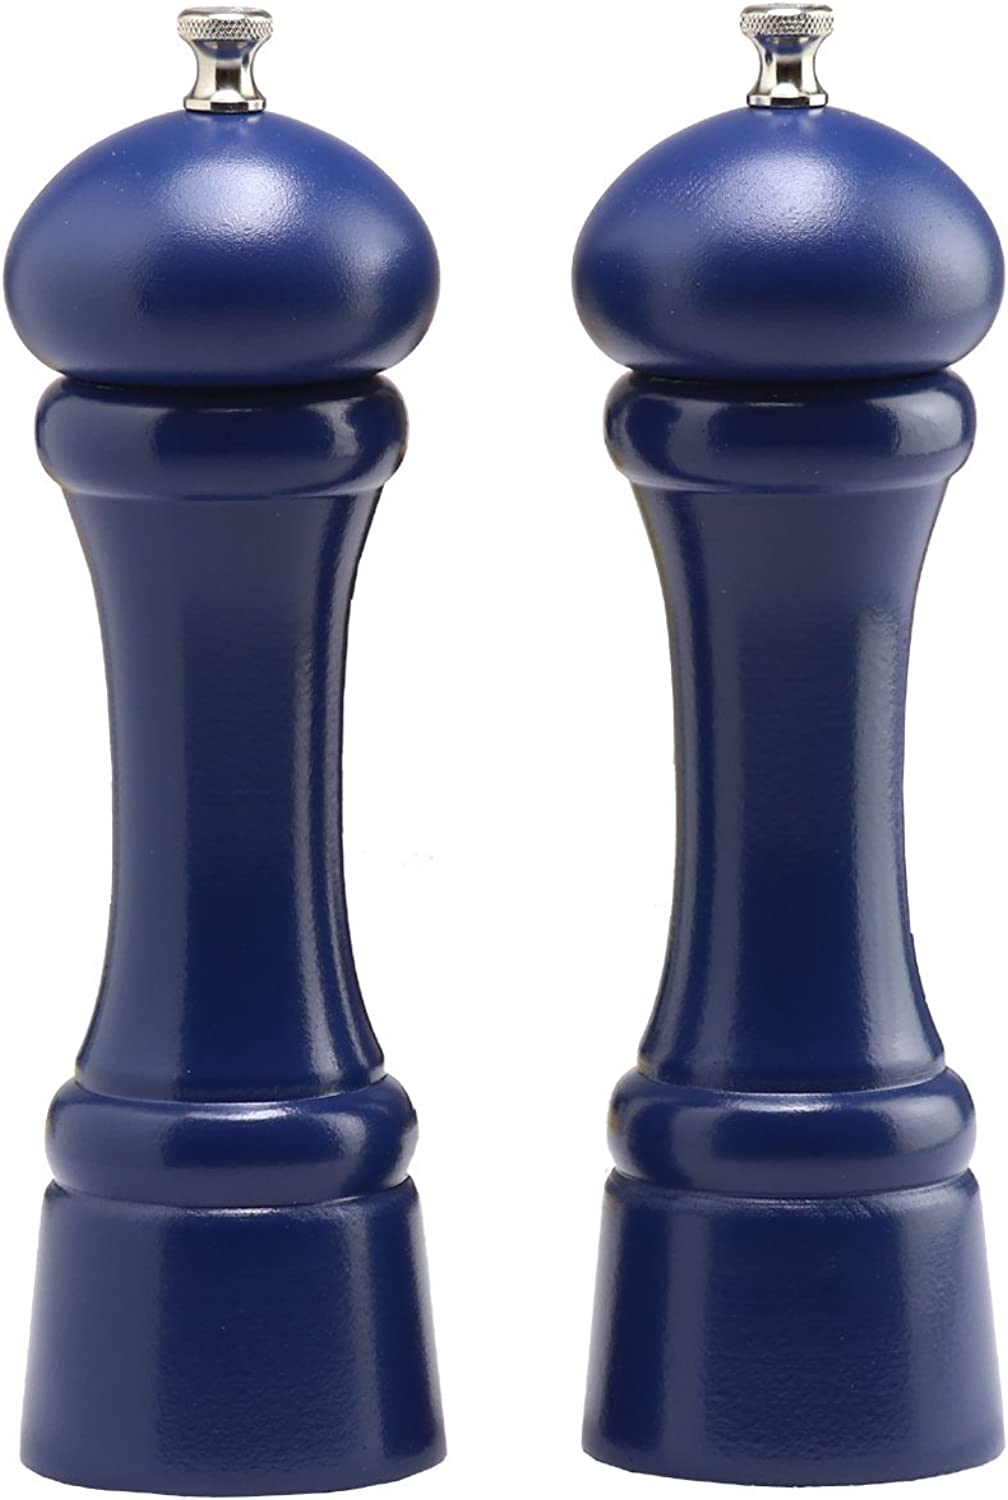 Chef Specialties 8  Windsor Pepper Mill and Salt Mill Set, Cobalt bluee